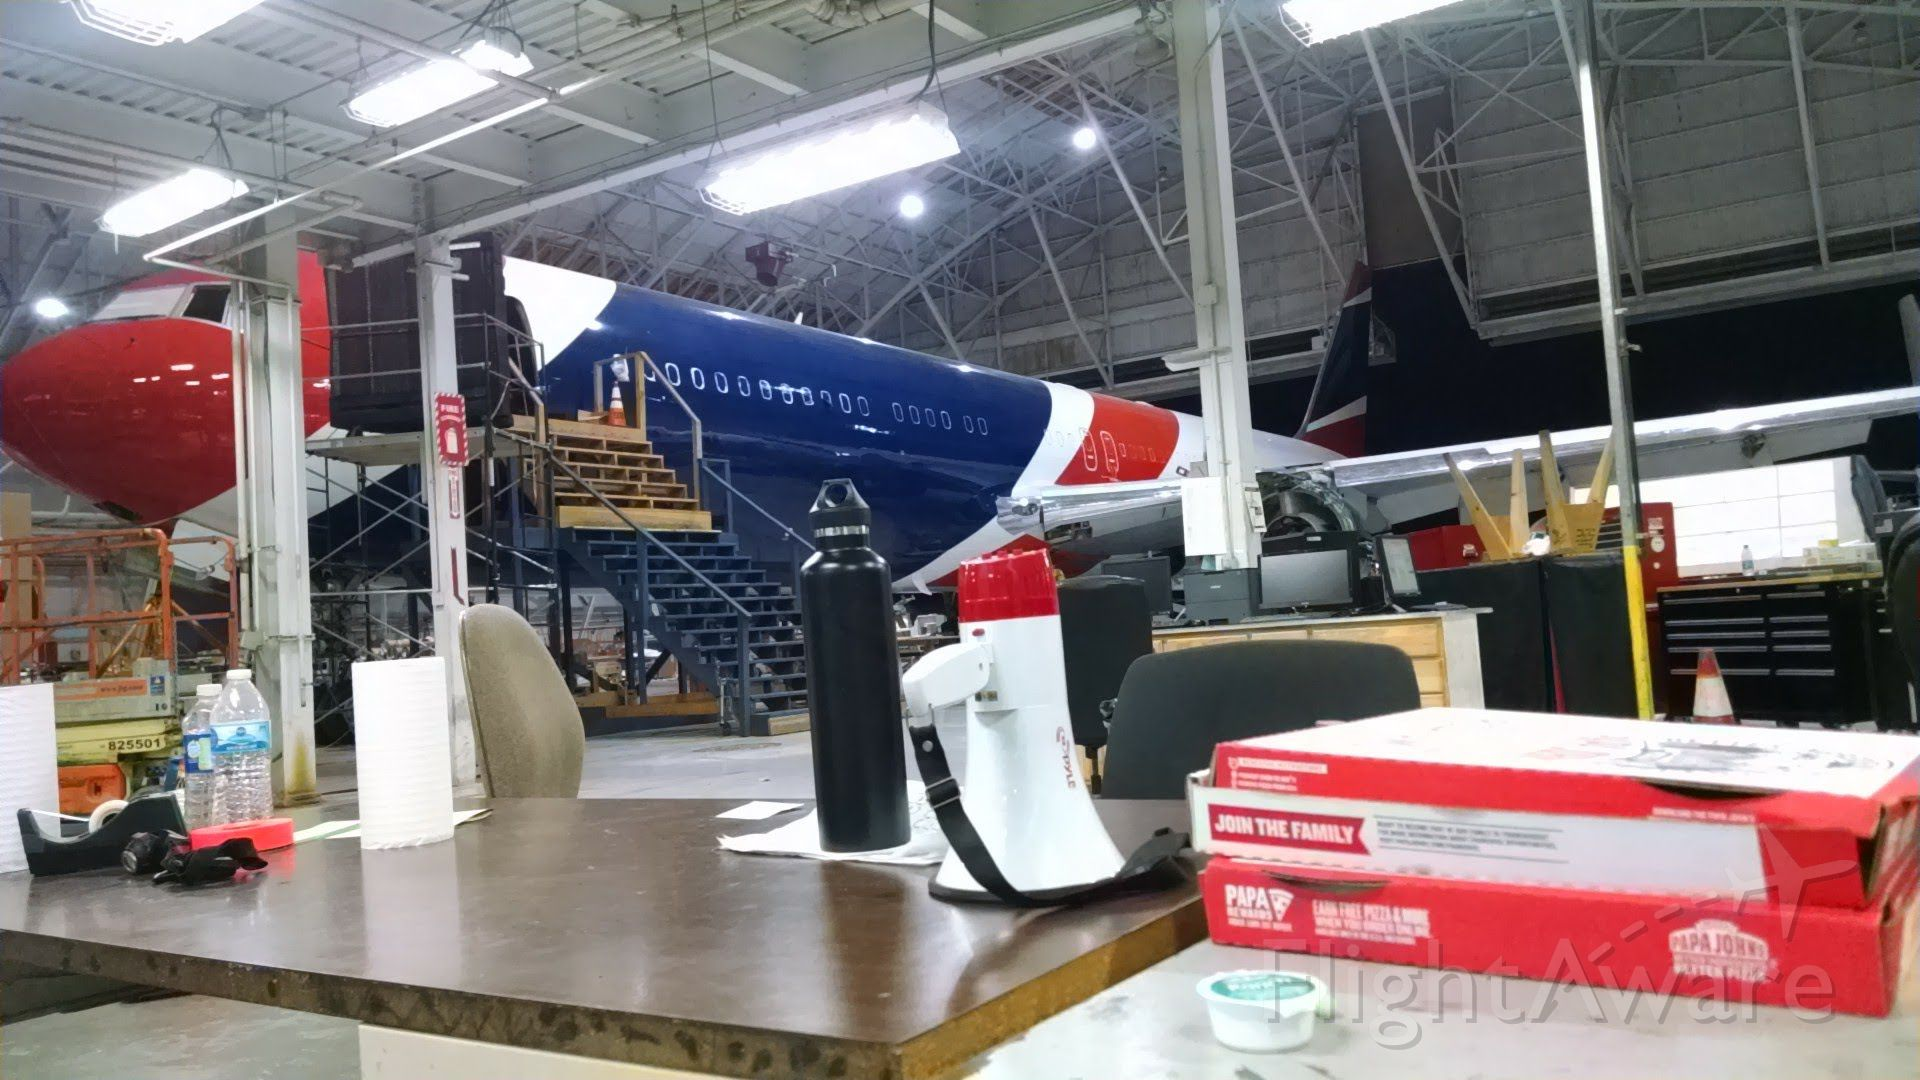 BOEING 767-200 — - Patriots 767 in the shop, heavy check and interior reconfiguration.